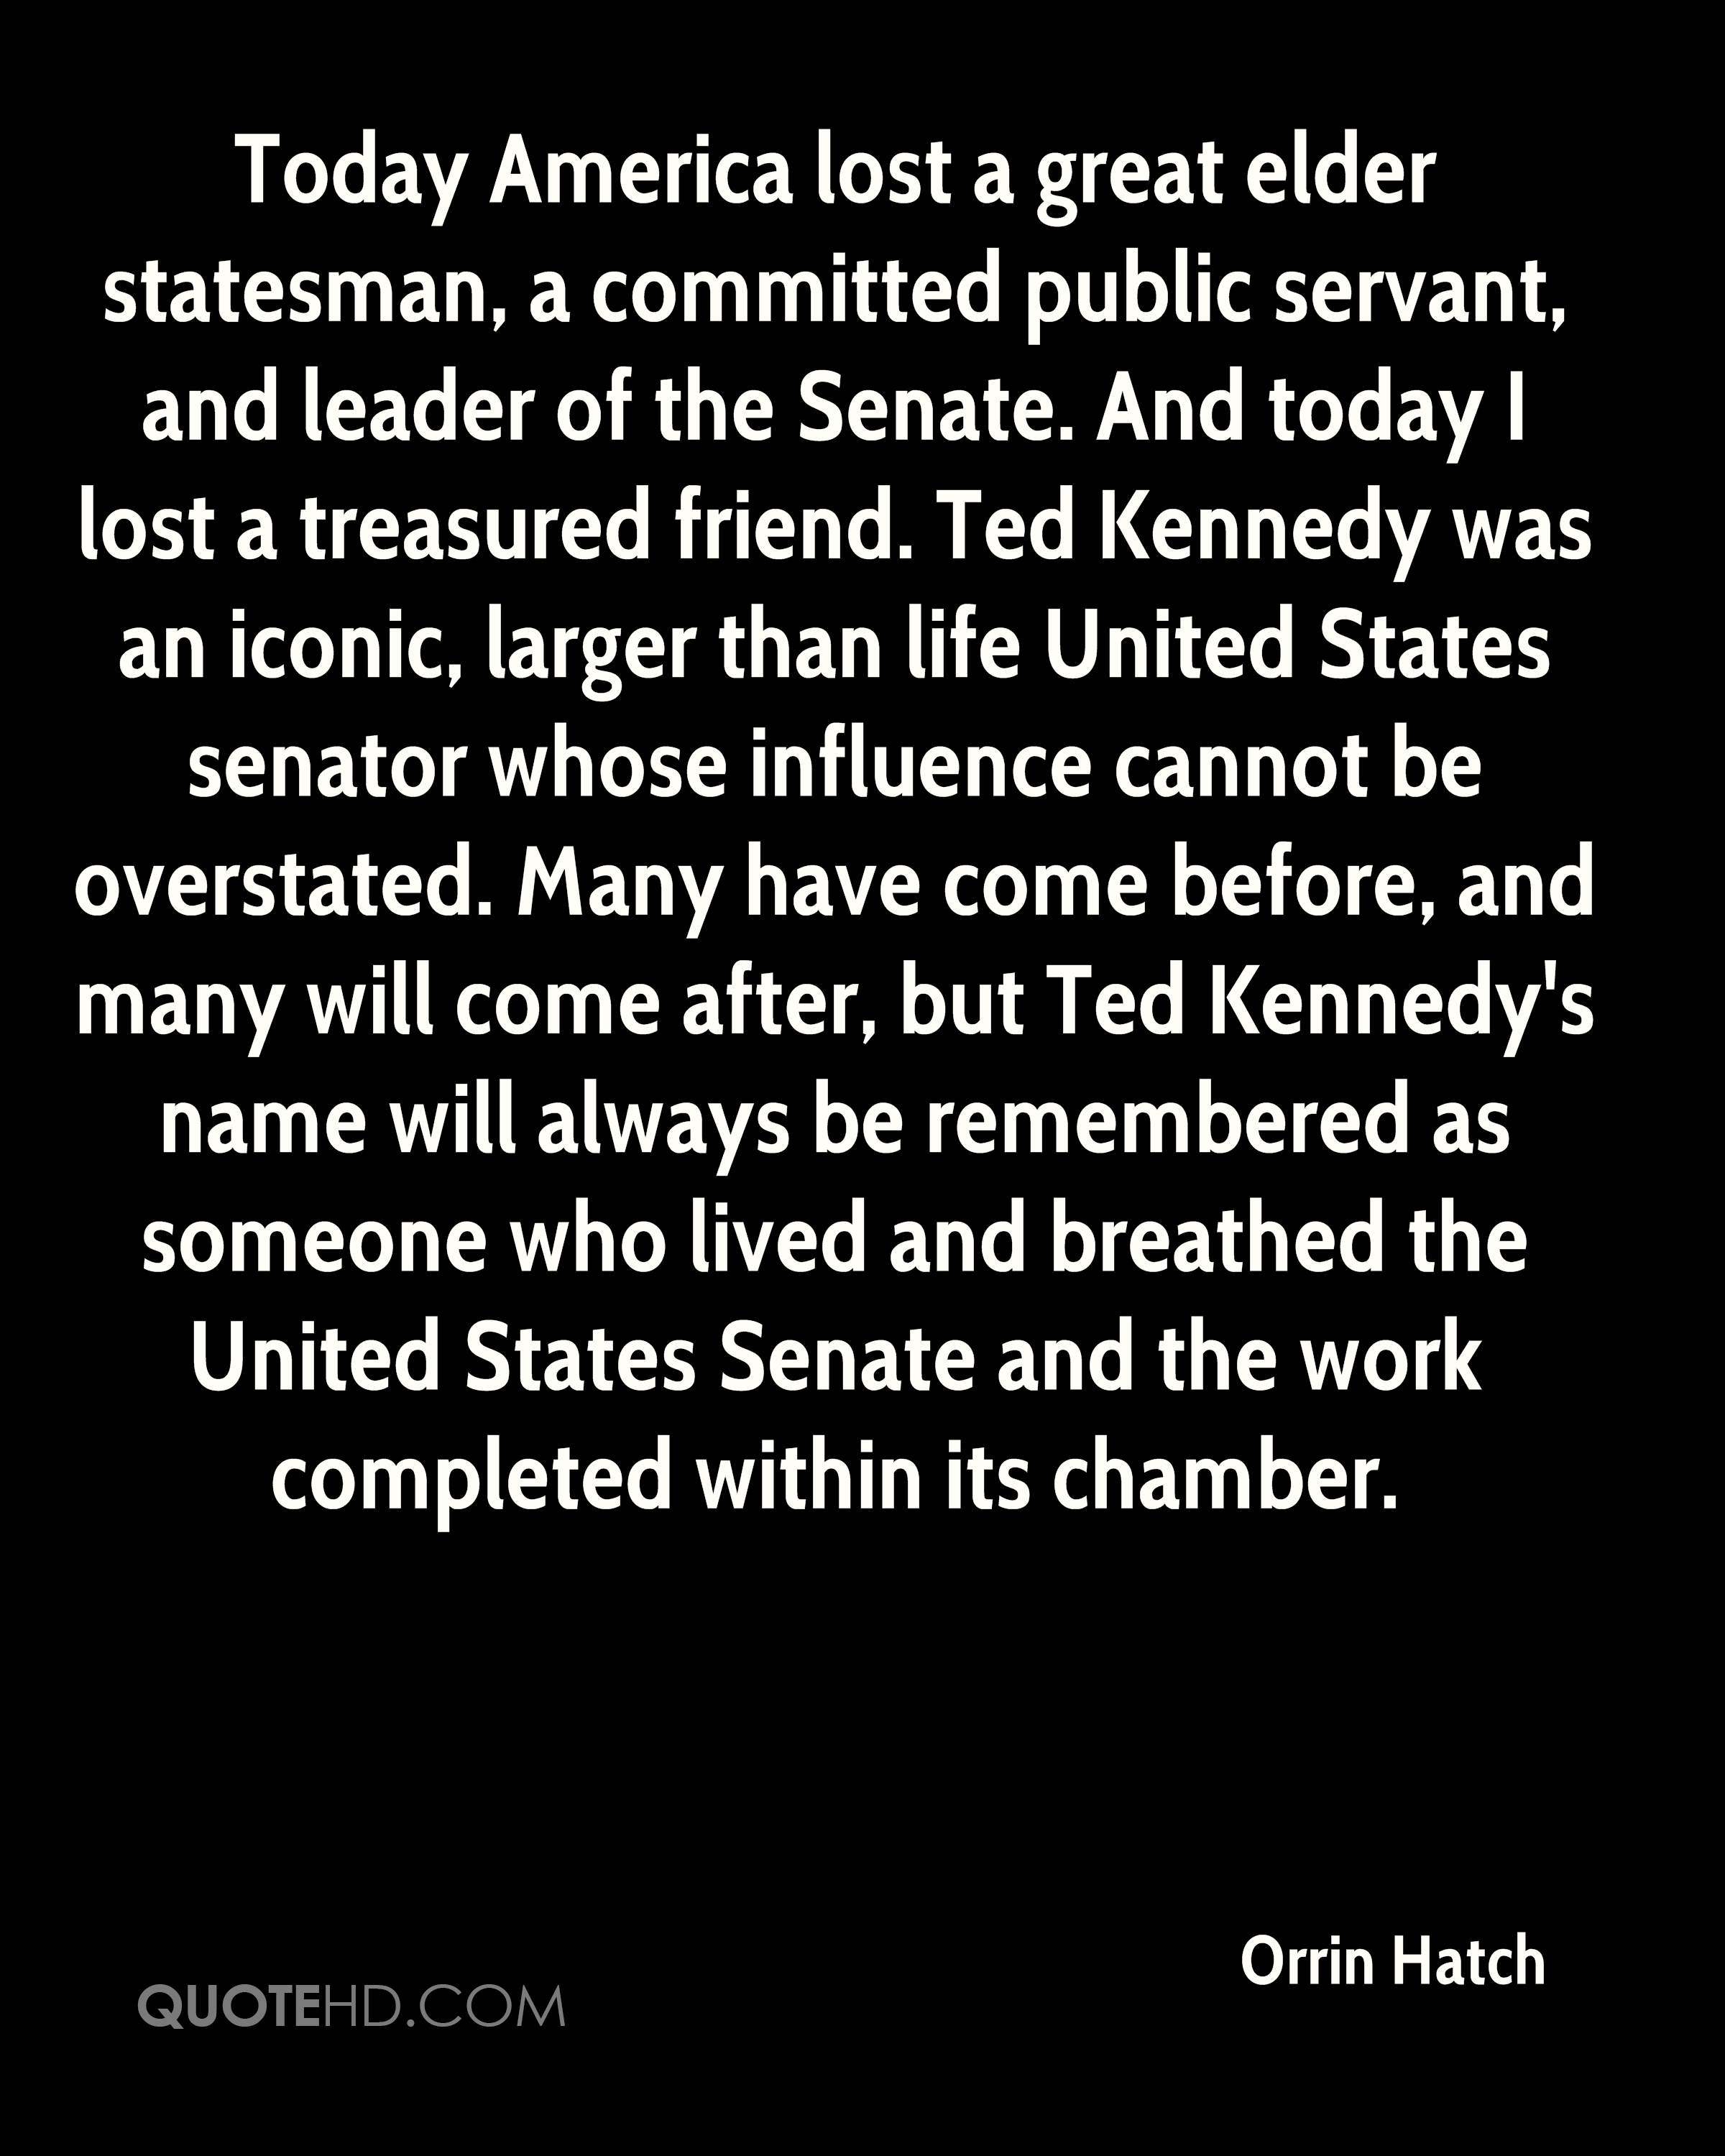 Today America lost a great elder statesman, a committed public servant, and leader of the Senate. And today I lost a treasured friend. Ted Kennedy was an iconic, larger than life United States senator whose influence cannot be overstated. Many have come before, and many will come after, but Ted Kennedy's name will always be remembered as someone who lived and breathed the United States Senate and the work completed within its chamber.